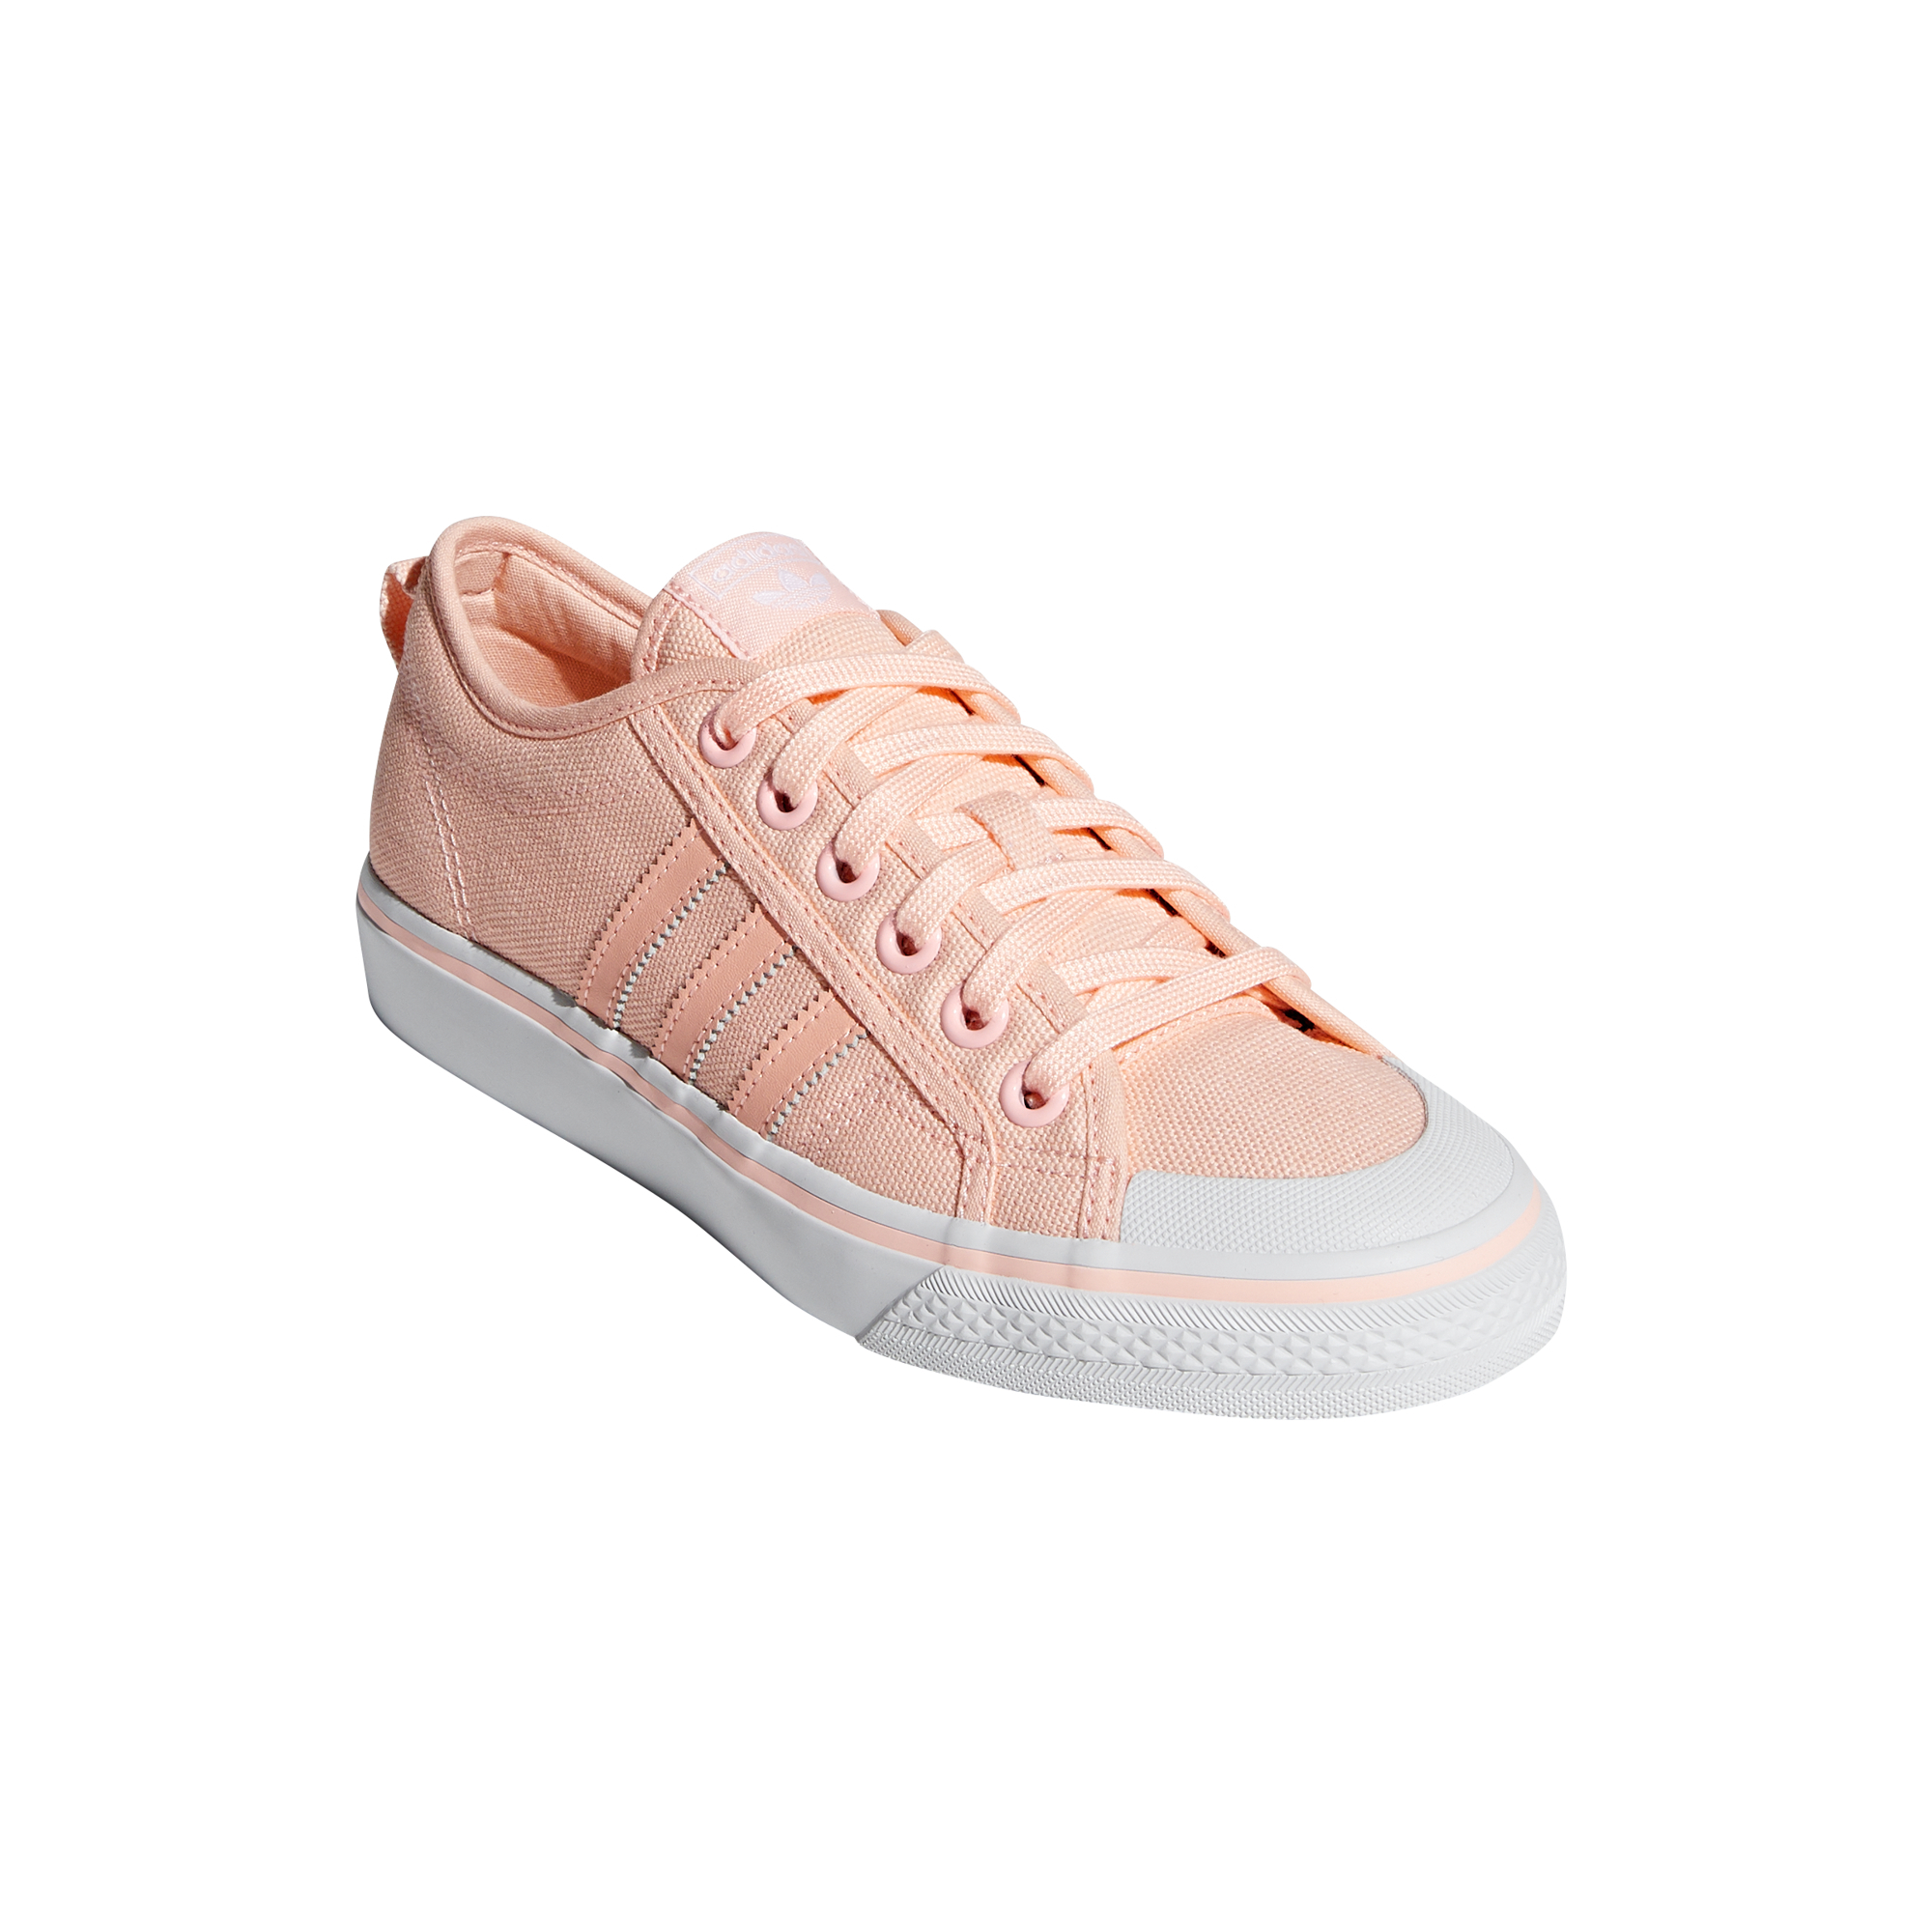 Chaussures femme adidas Nizza Low